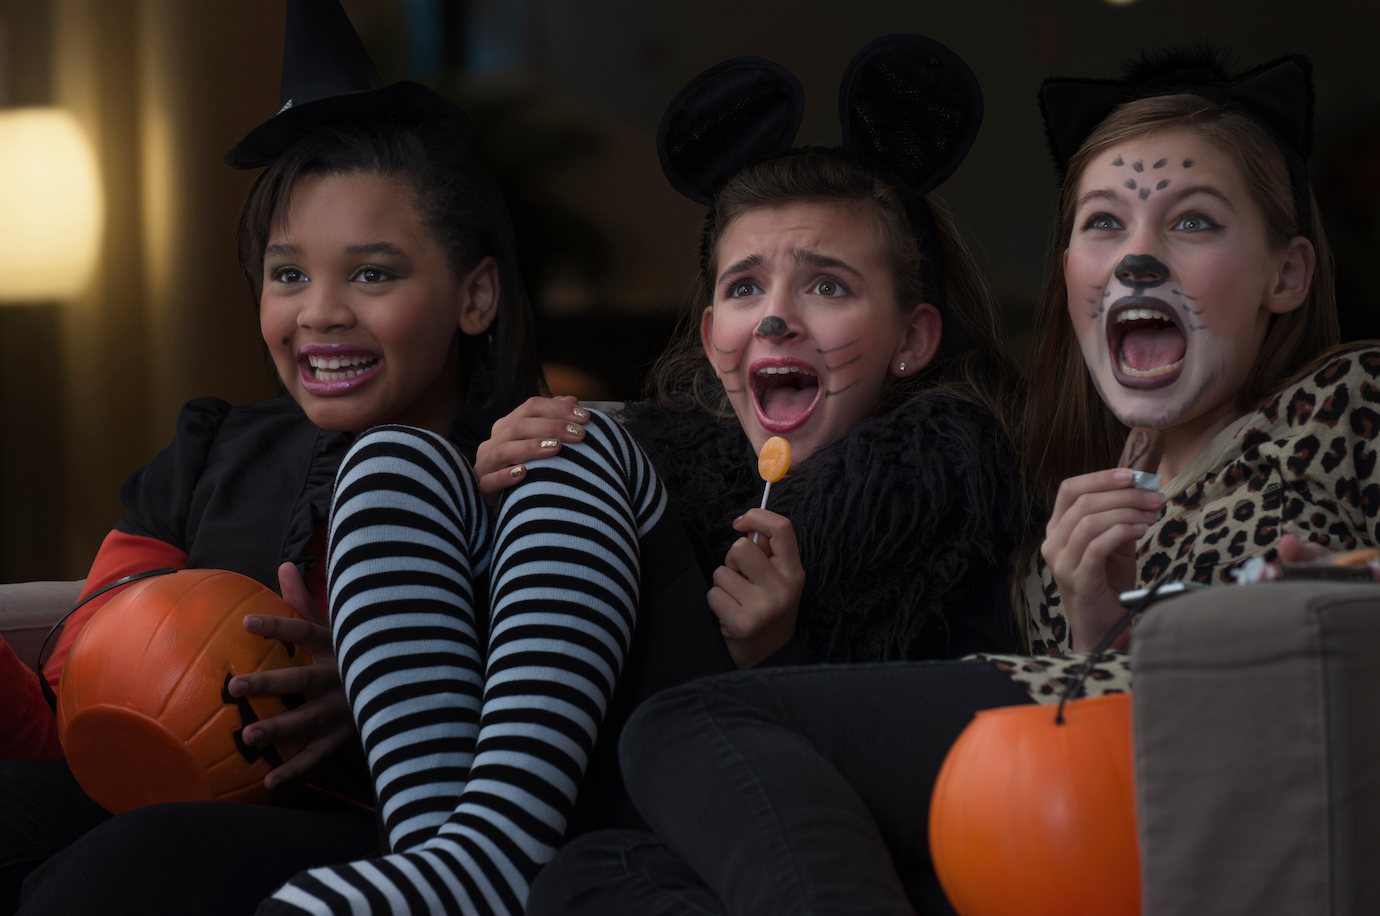 34 best halloween movies for kids family halloween movies - Halloween Movies About Witches